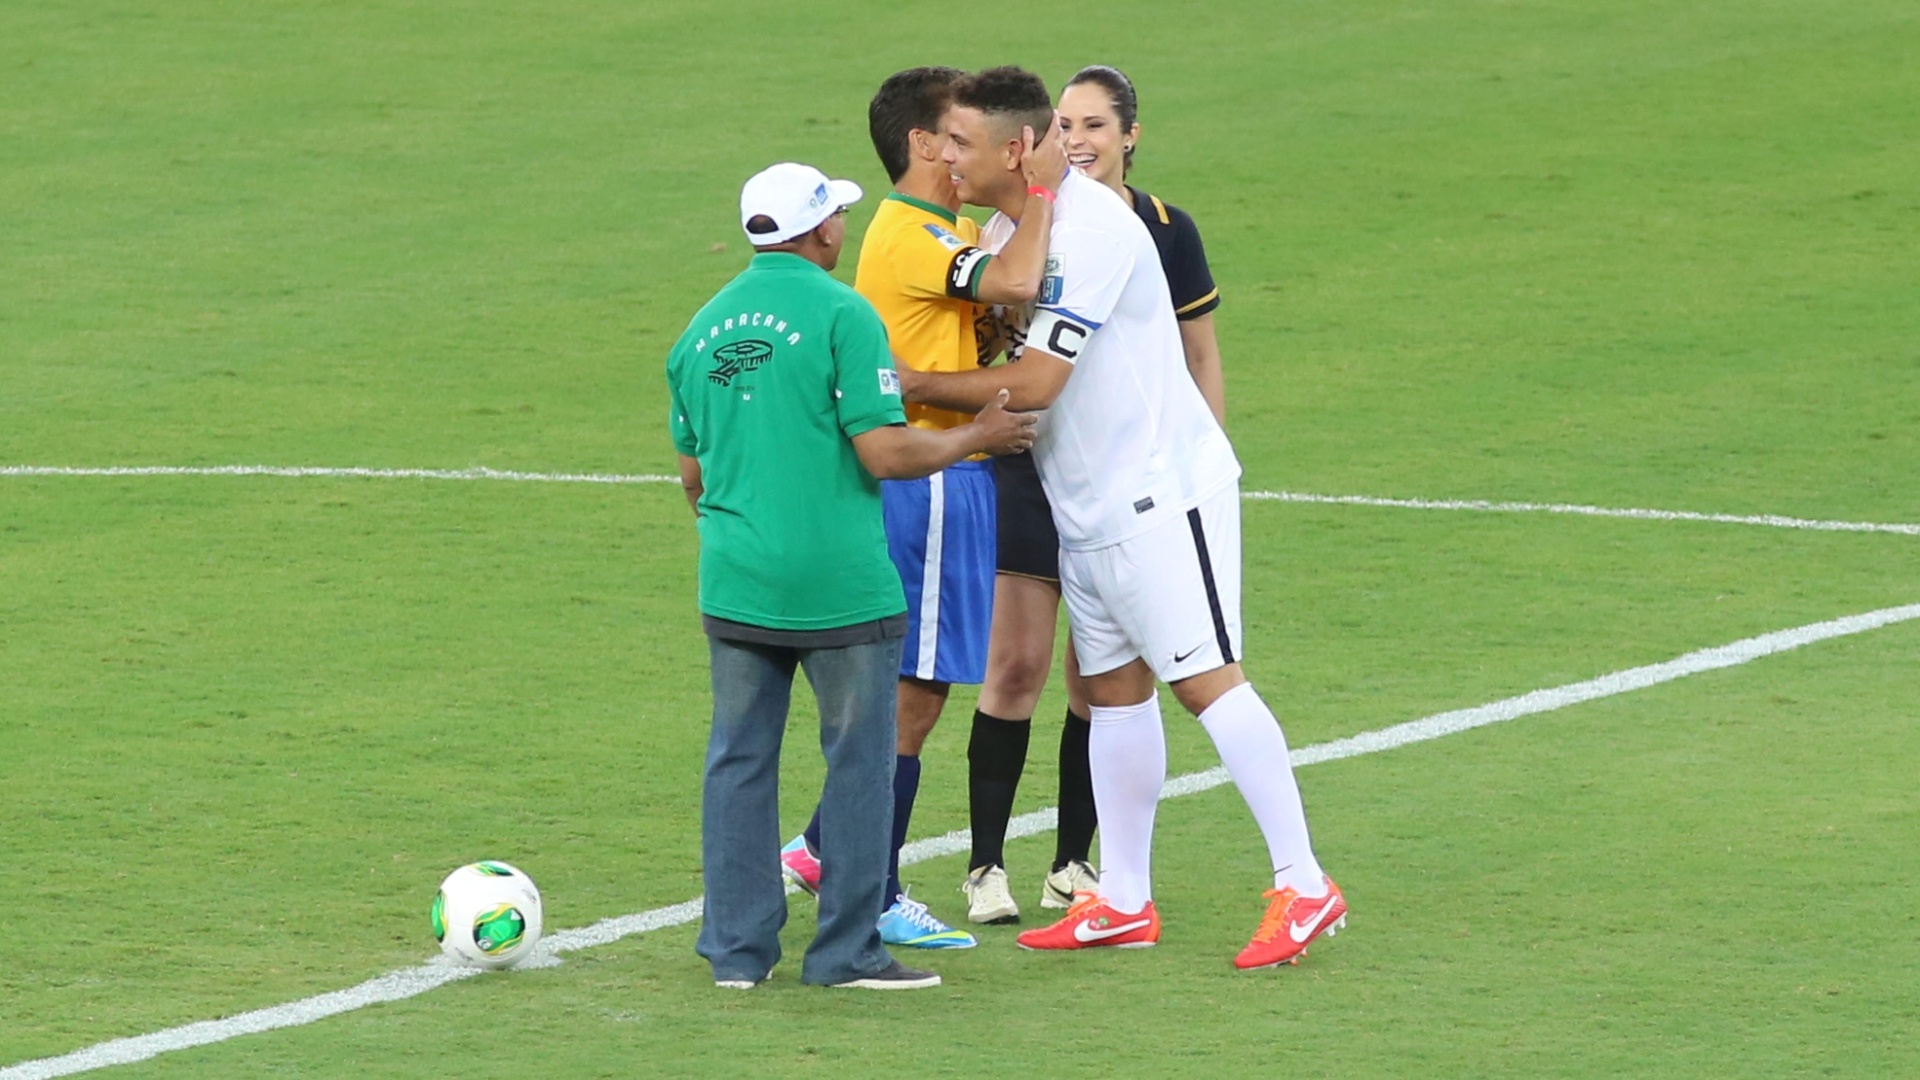 27.abr.2013 - Ronaldo e Bebeto se abraam antes do incio do jogo que serve como evento teste para a reabertura do Maracan